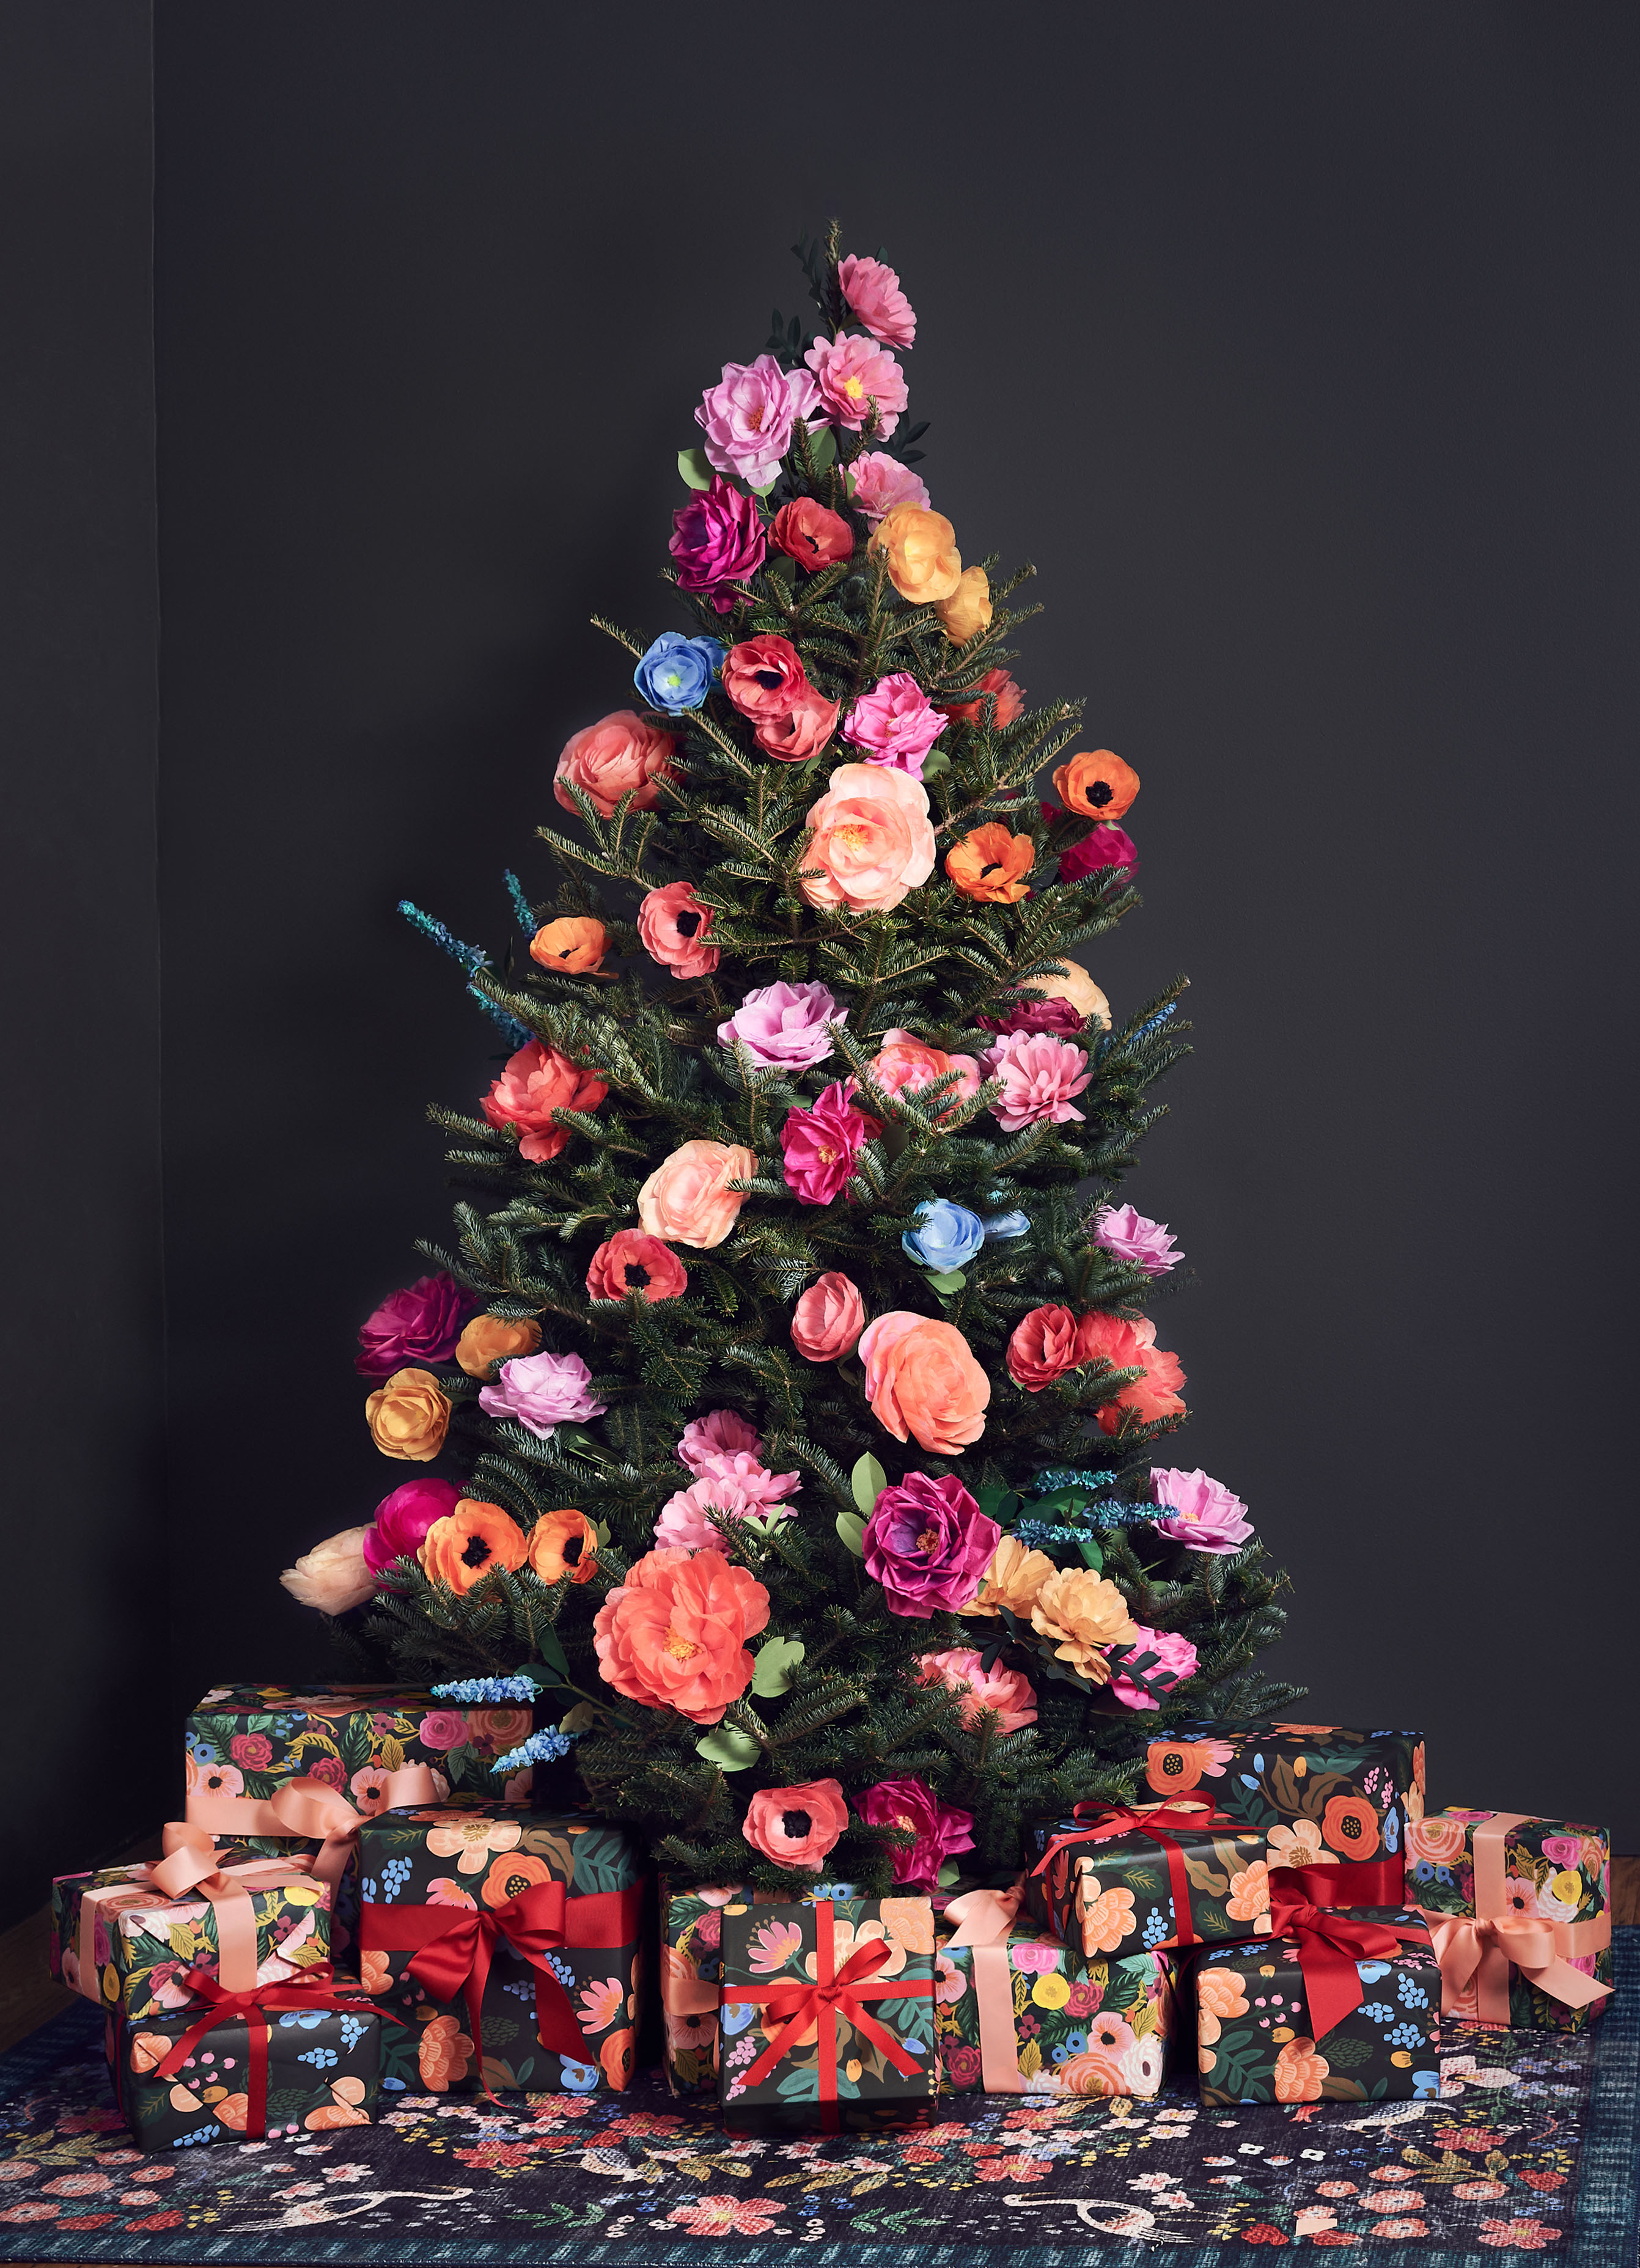 Floral Christmas tree by Rifle Paper Co.